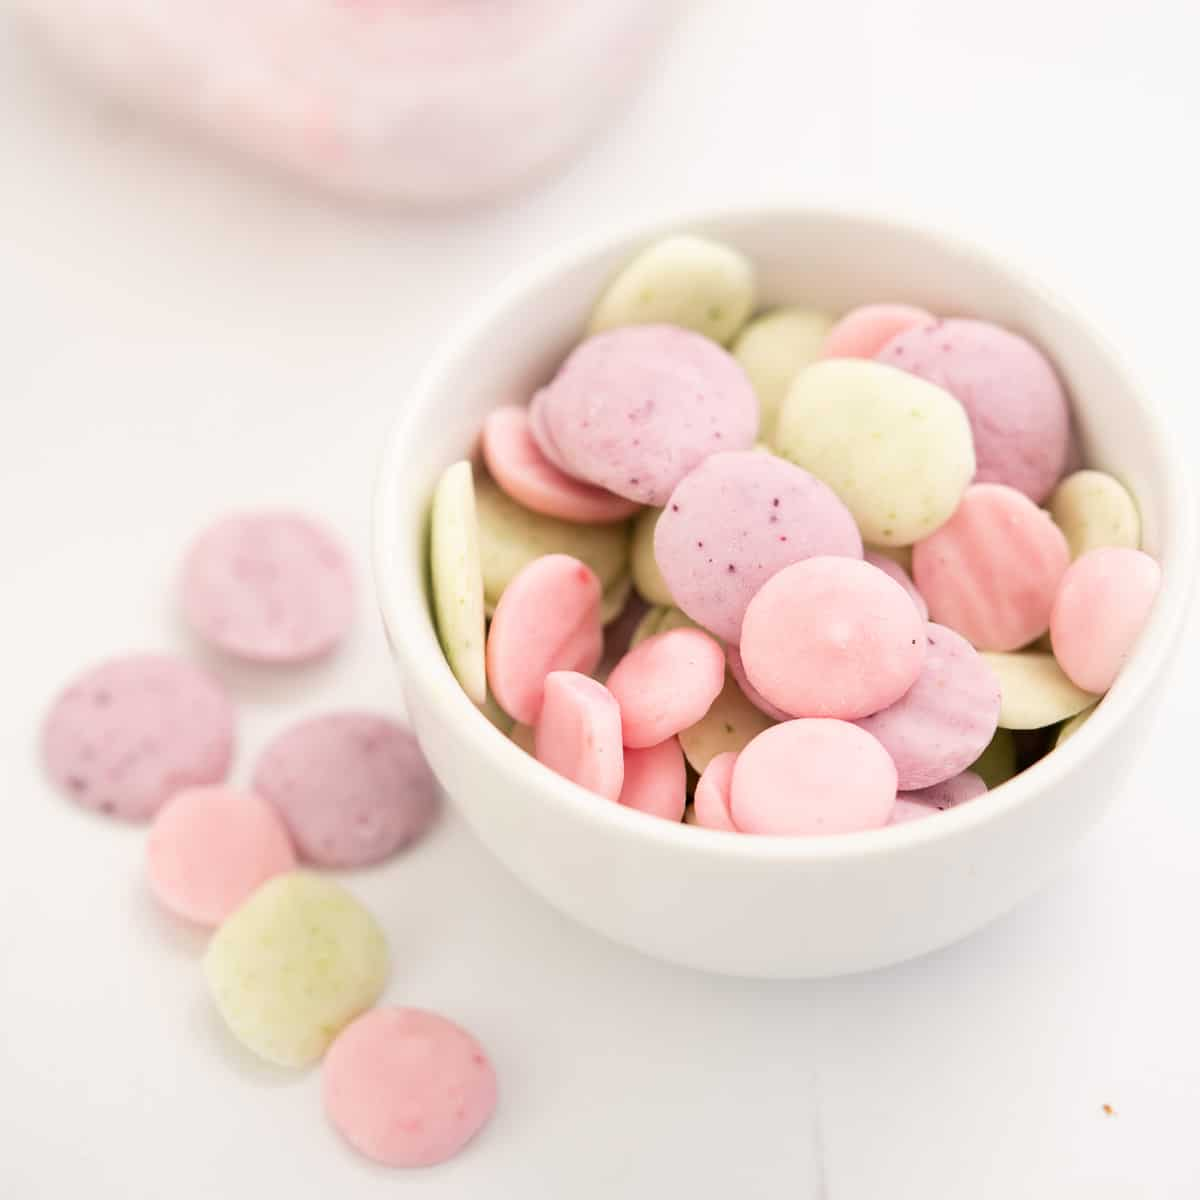 a small white bowl of baby yogurt melts in 3 colours, pale pink, lavender and pale green.